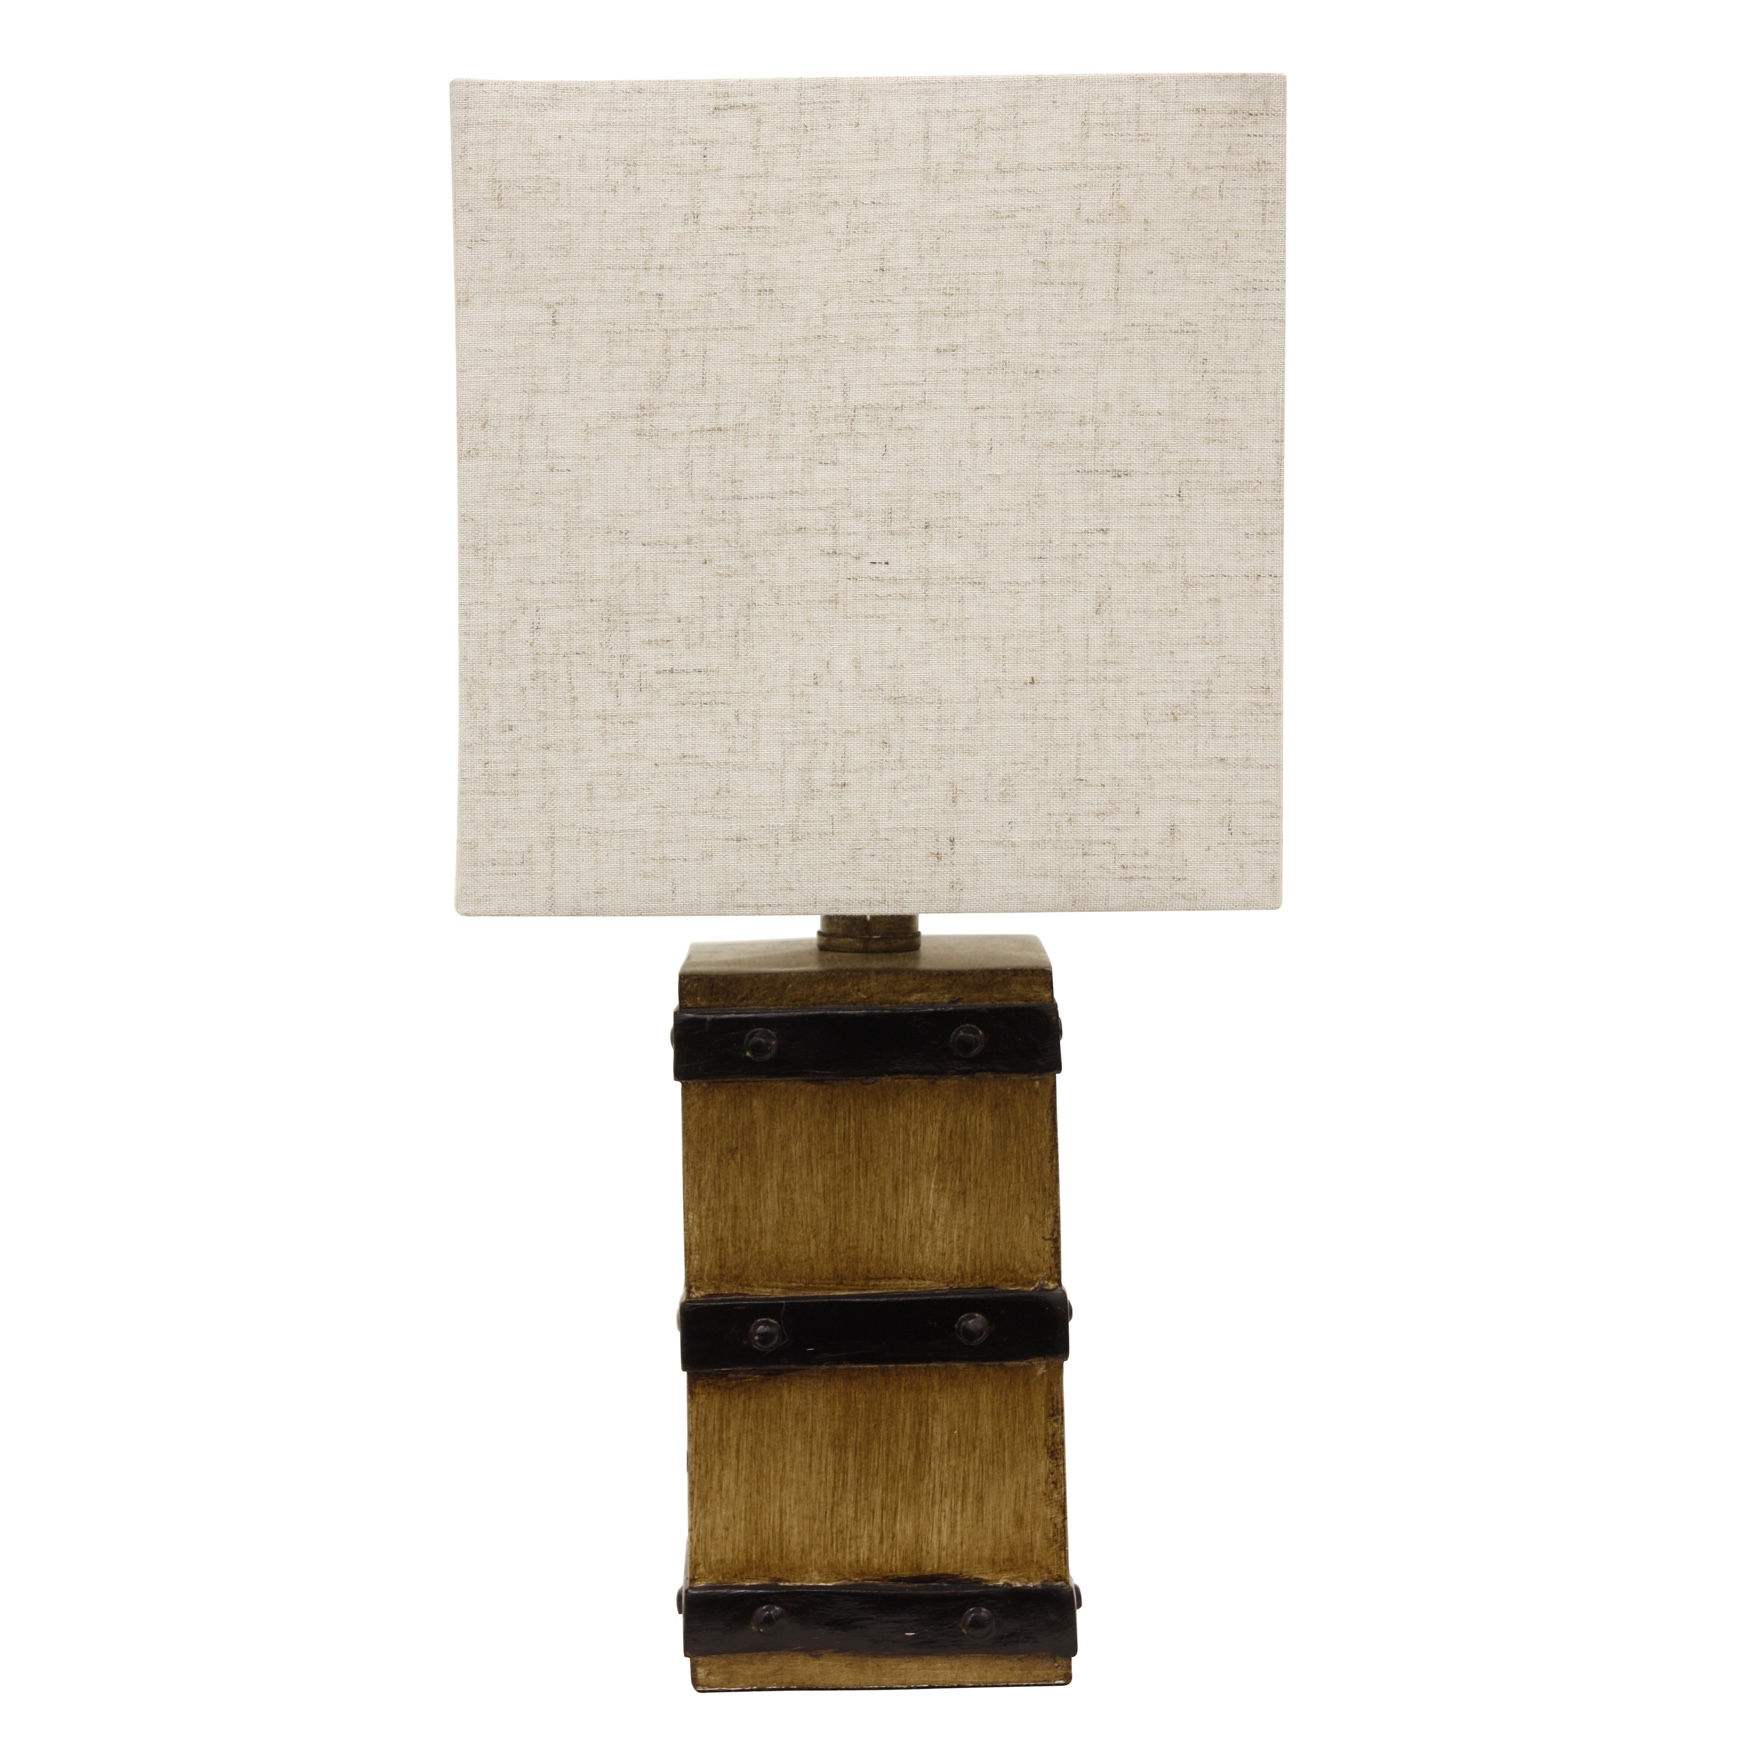 Square Barrel Accent Lamp, SQUARE